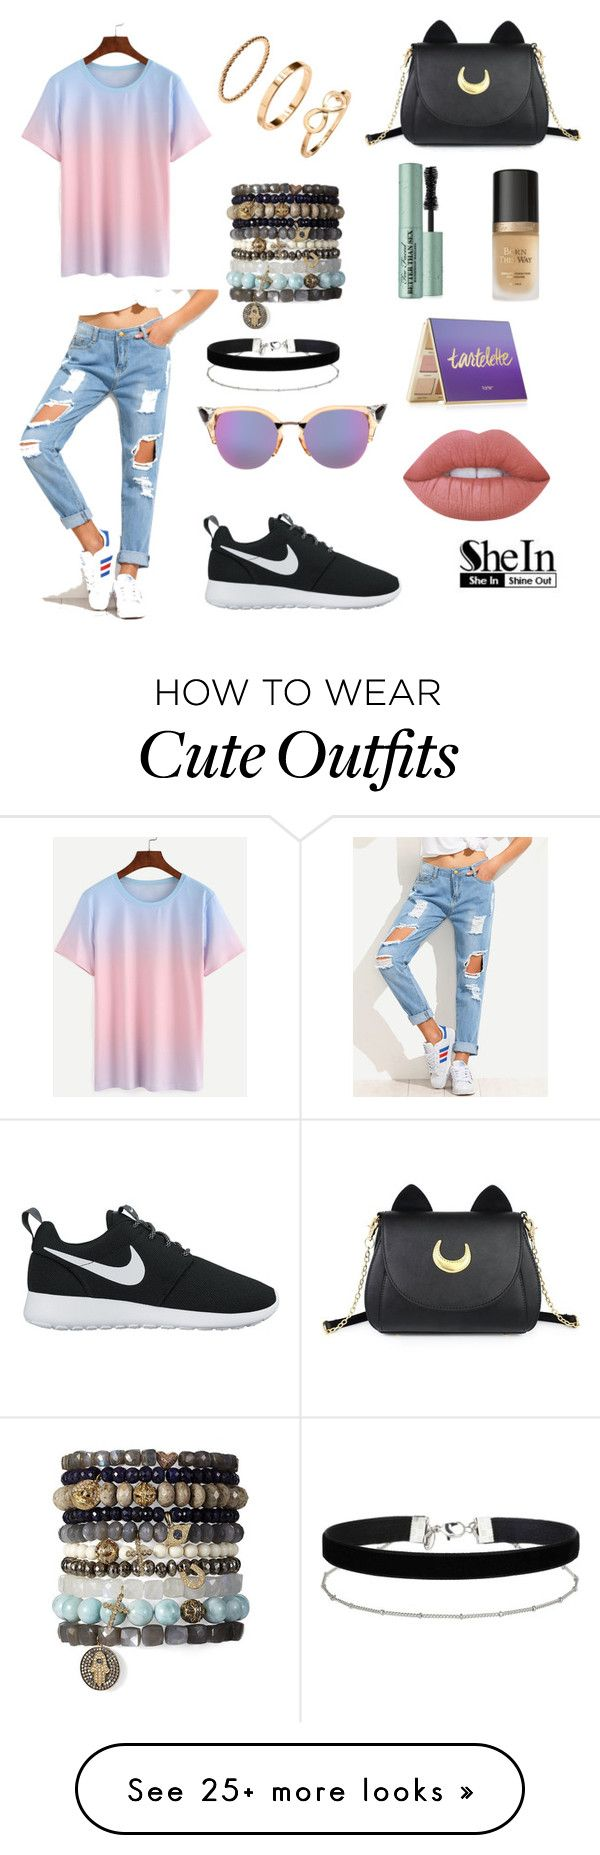 """pretty in pastels. nice and relaxed but cute outfit"" by morganna15 on Polyvore featuring NIKE, Usagi, Fendi, Miss Selfridge, Lime Crime, tarte and Too Faced Cosmetics"